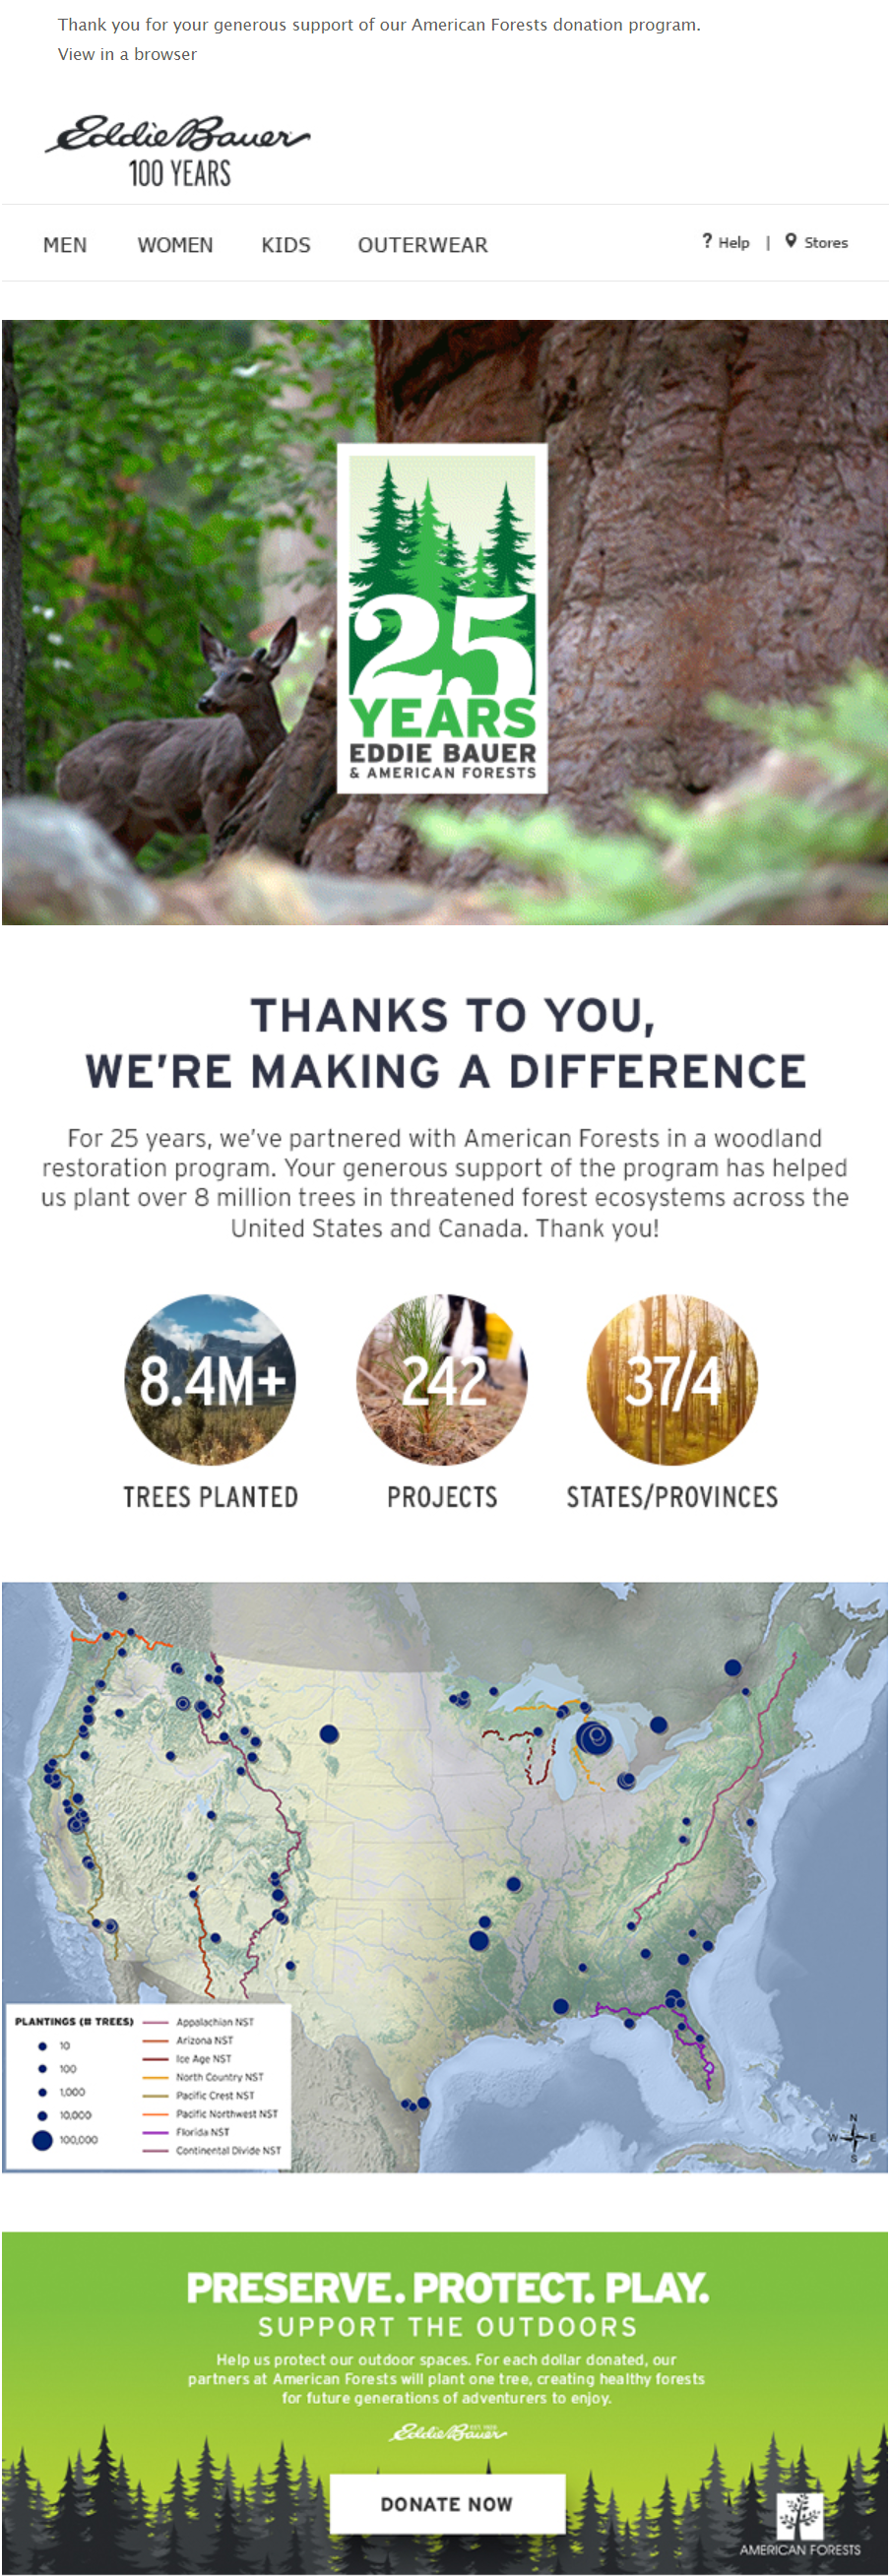 EddieBauer-you-american-forests-8-million-trees-planted